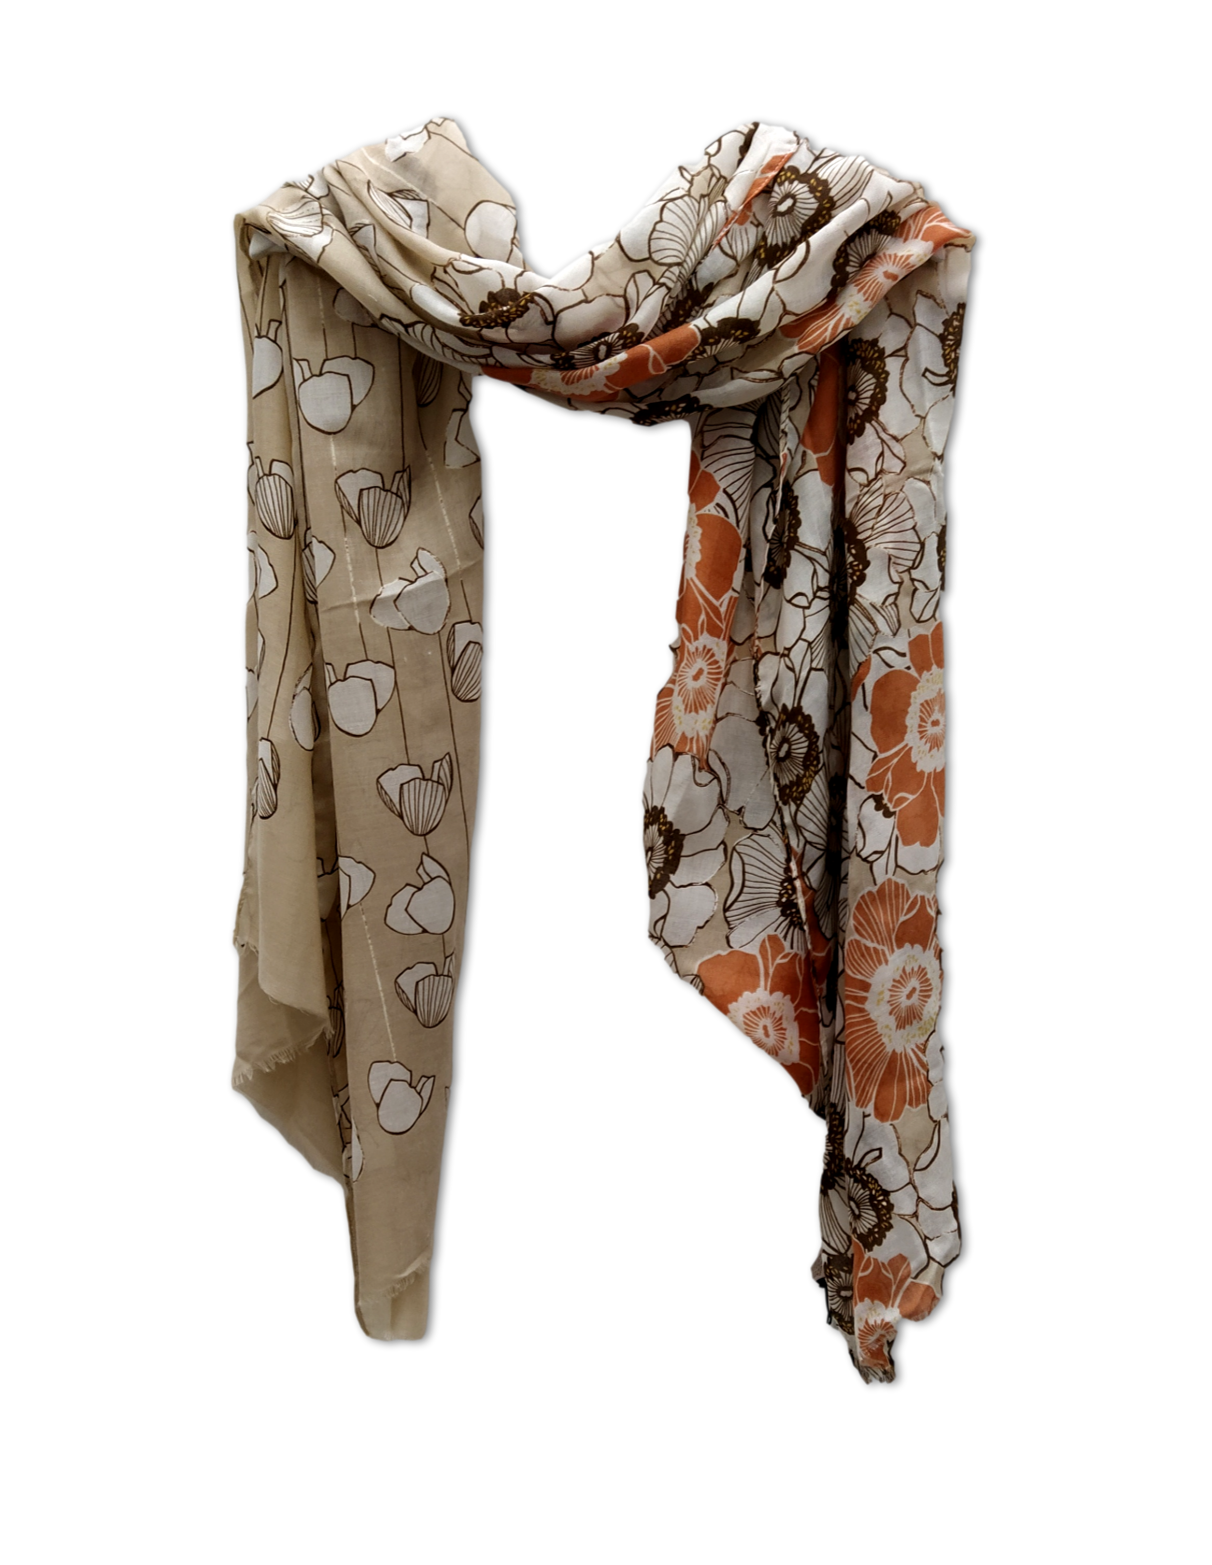 Two design scarf in beige and tan